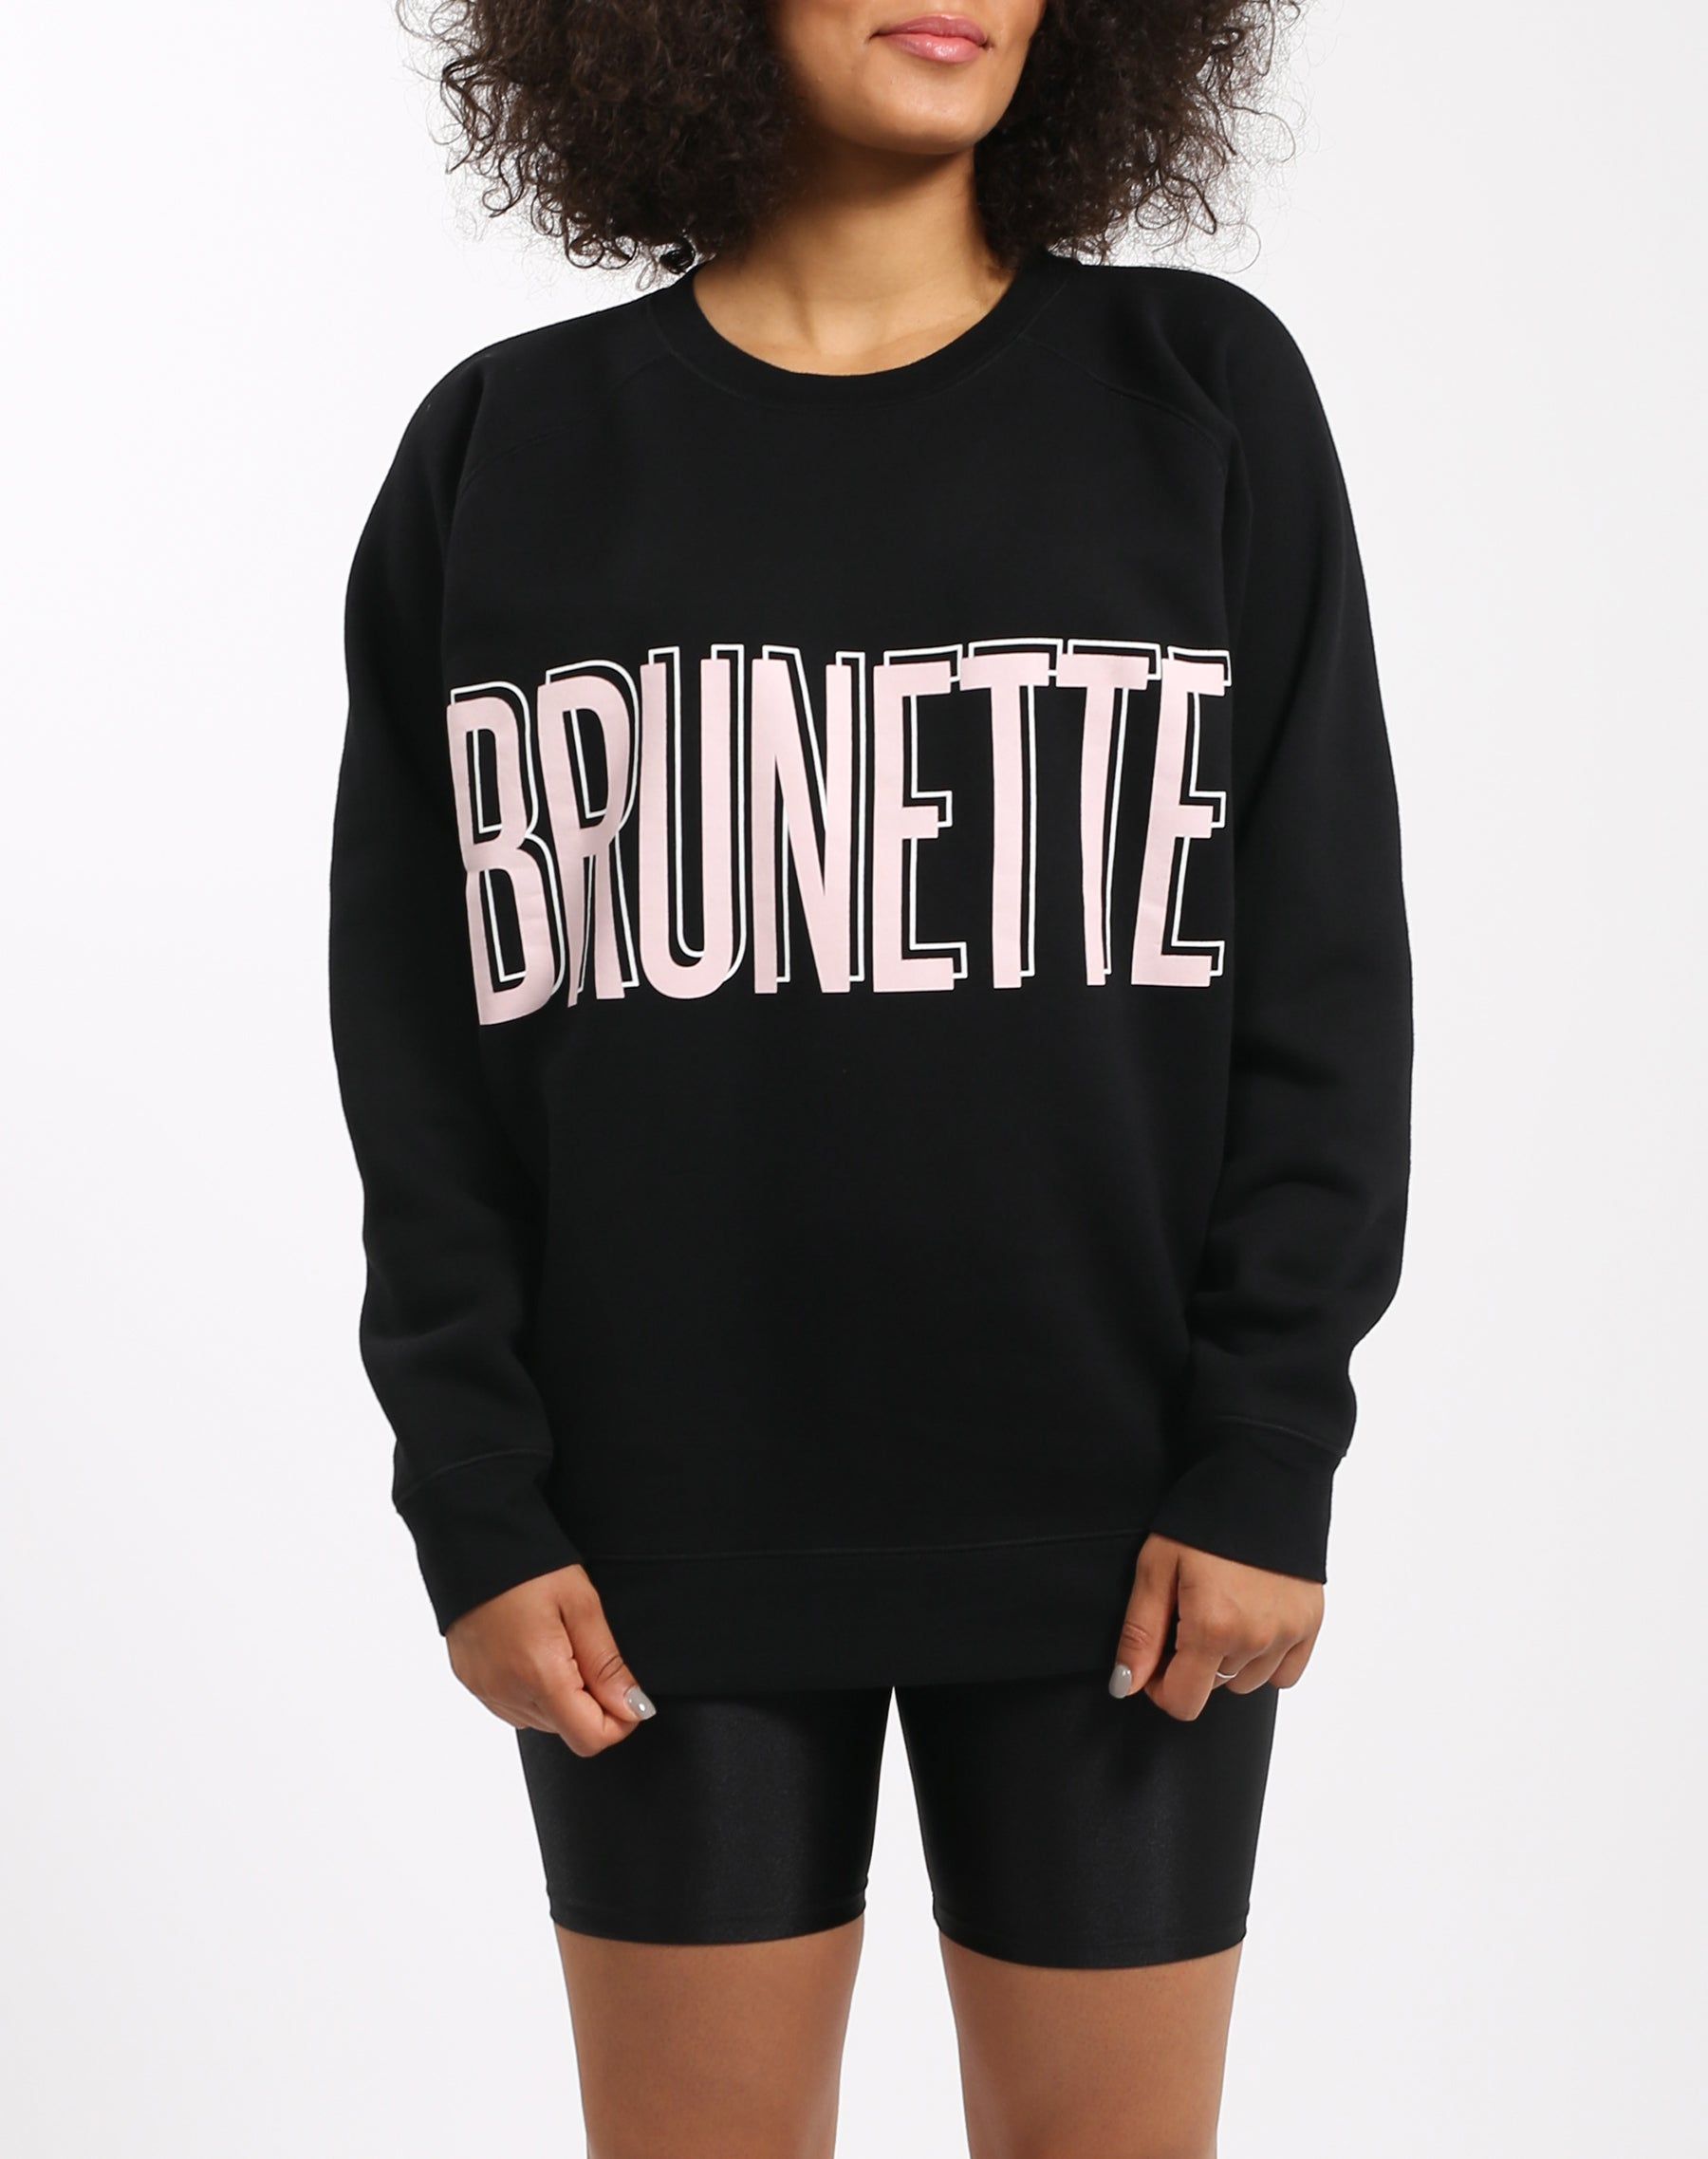 Photo 4 of the Brunette big sister crew neck sweatshirt in pink by Brunette the Label.